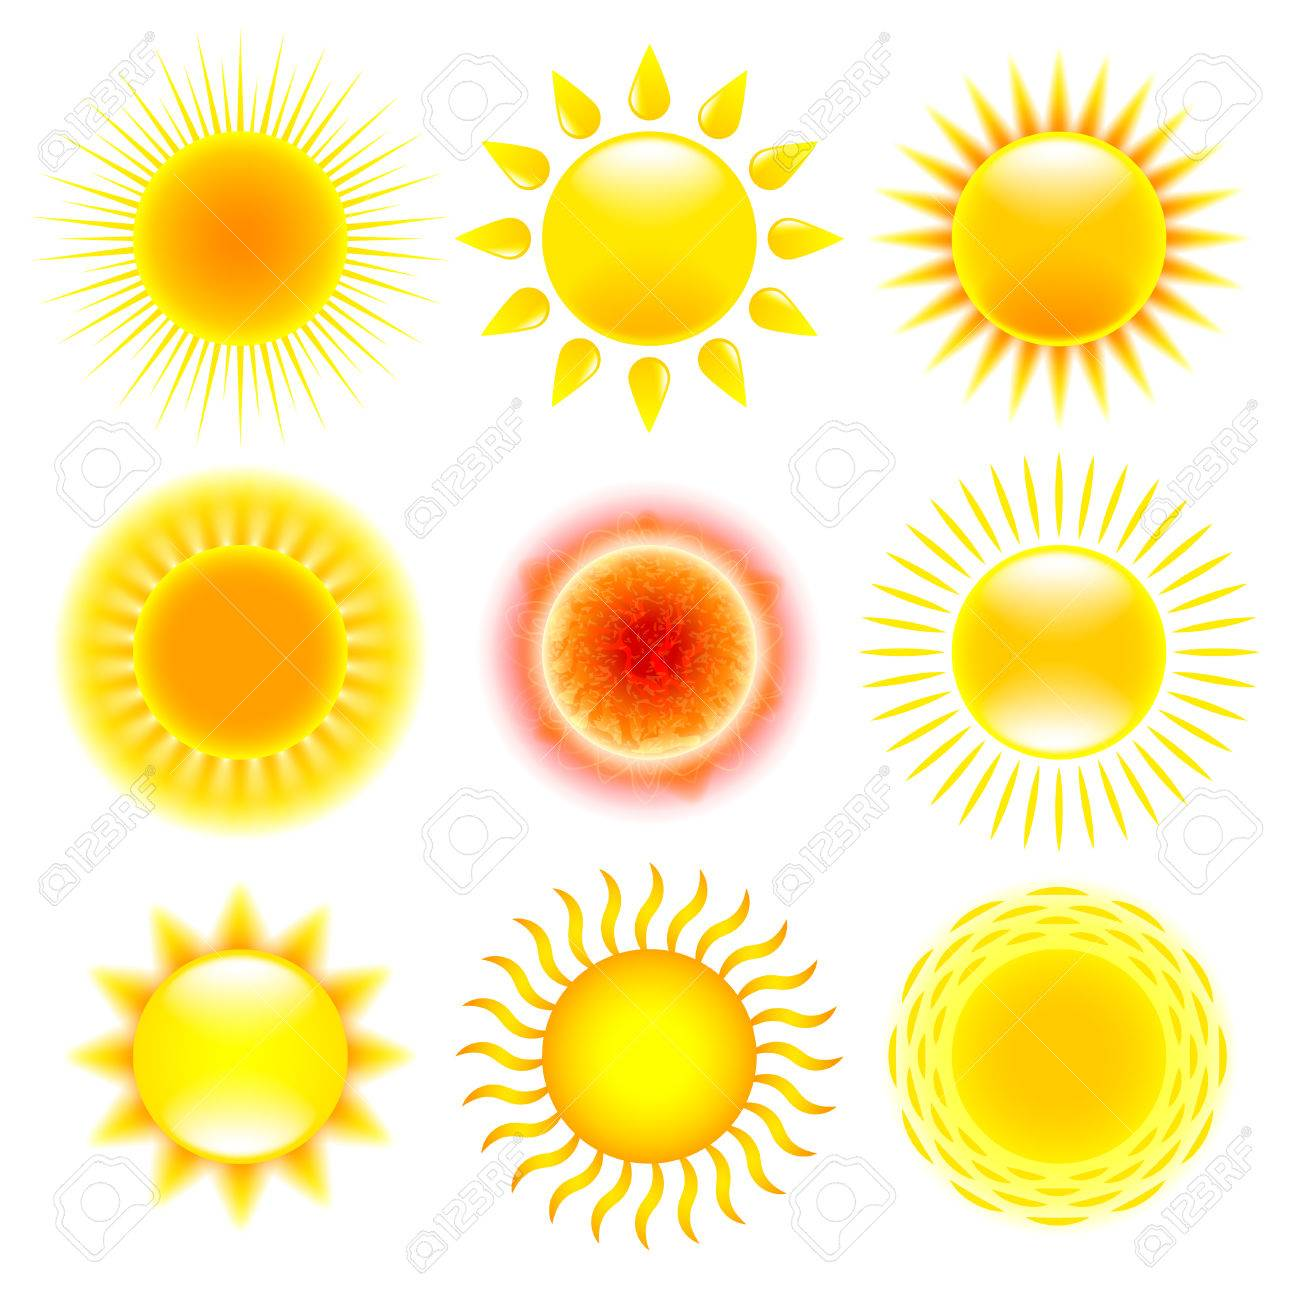 Sun icons detailed photo realistic vector set - 51987865